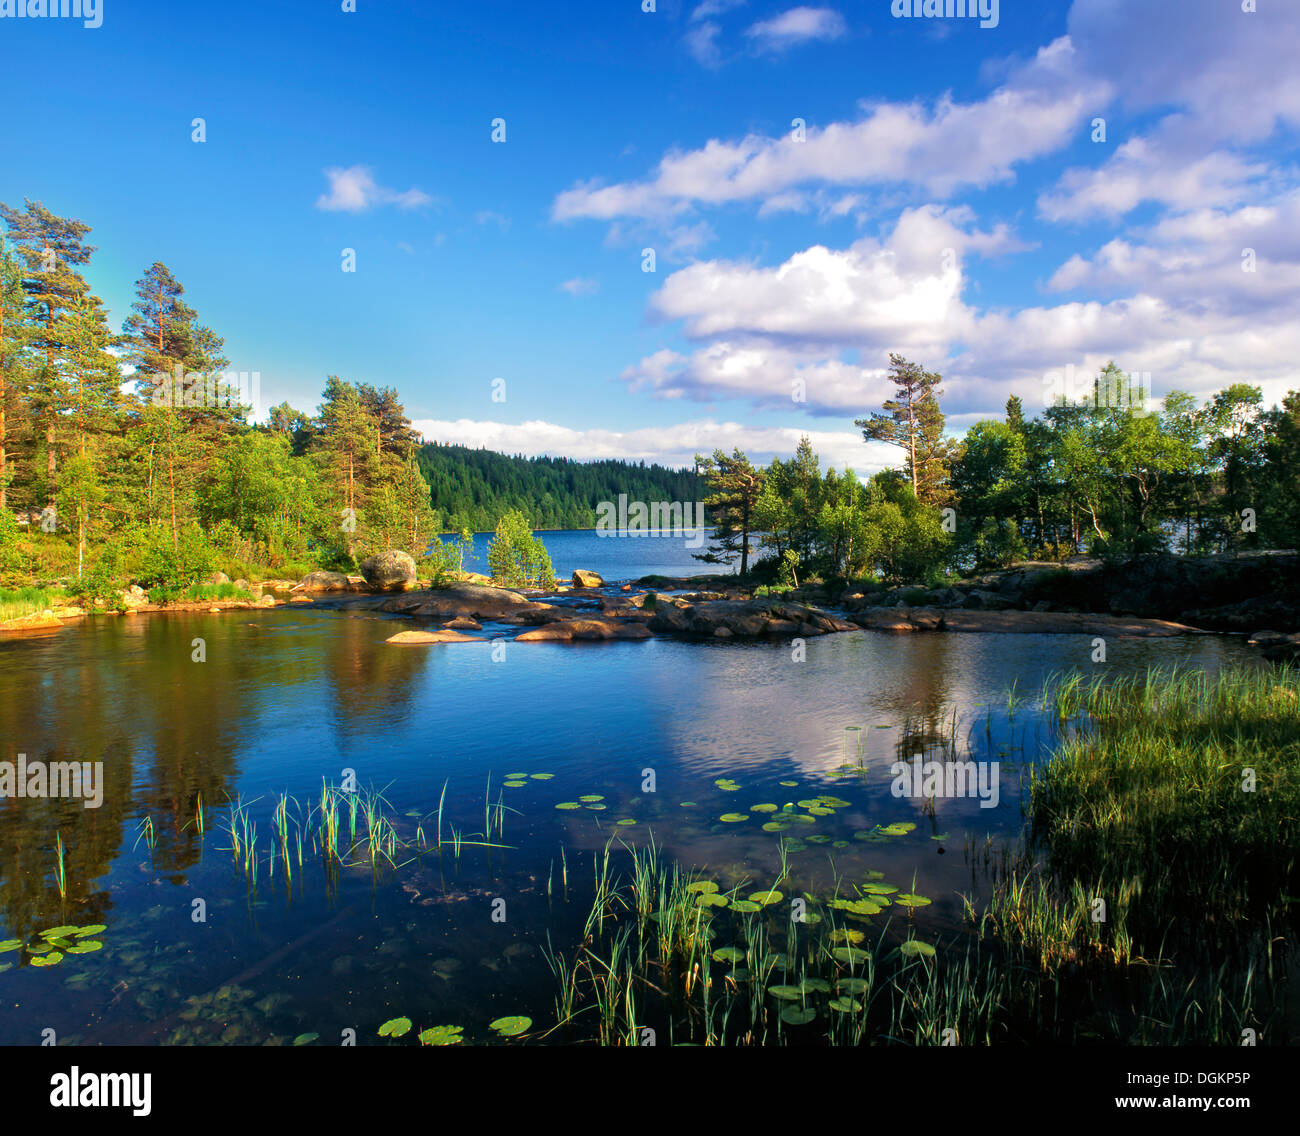 A view of a tranquil lake in southern Norway. - Stock Image